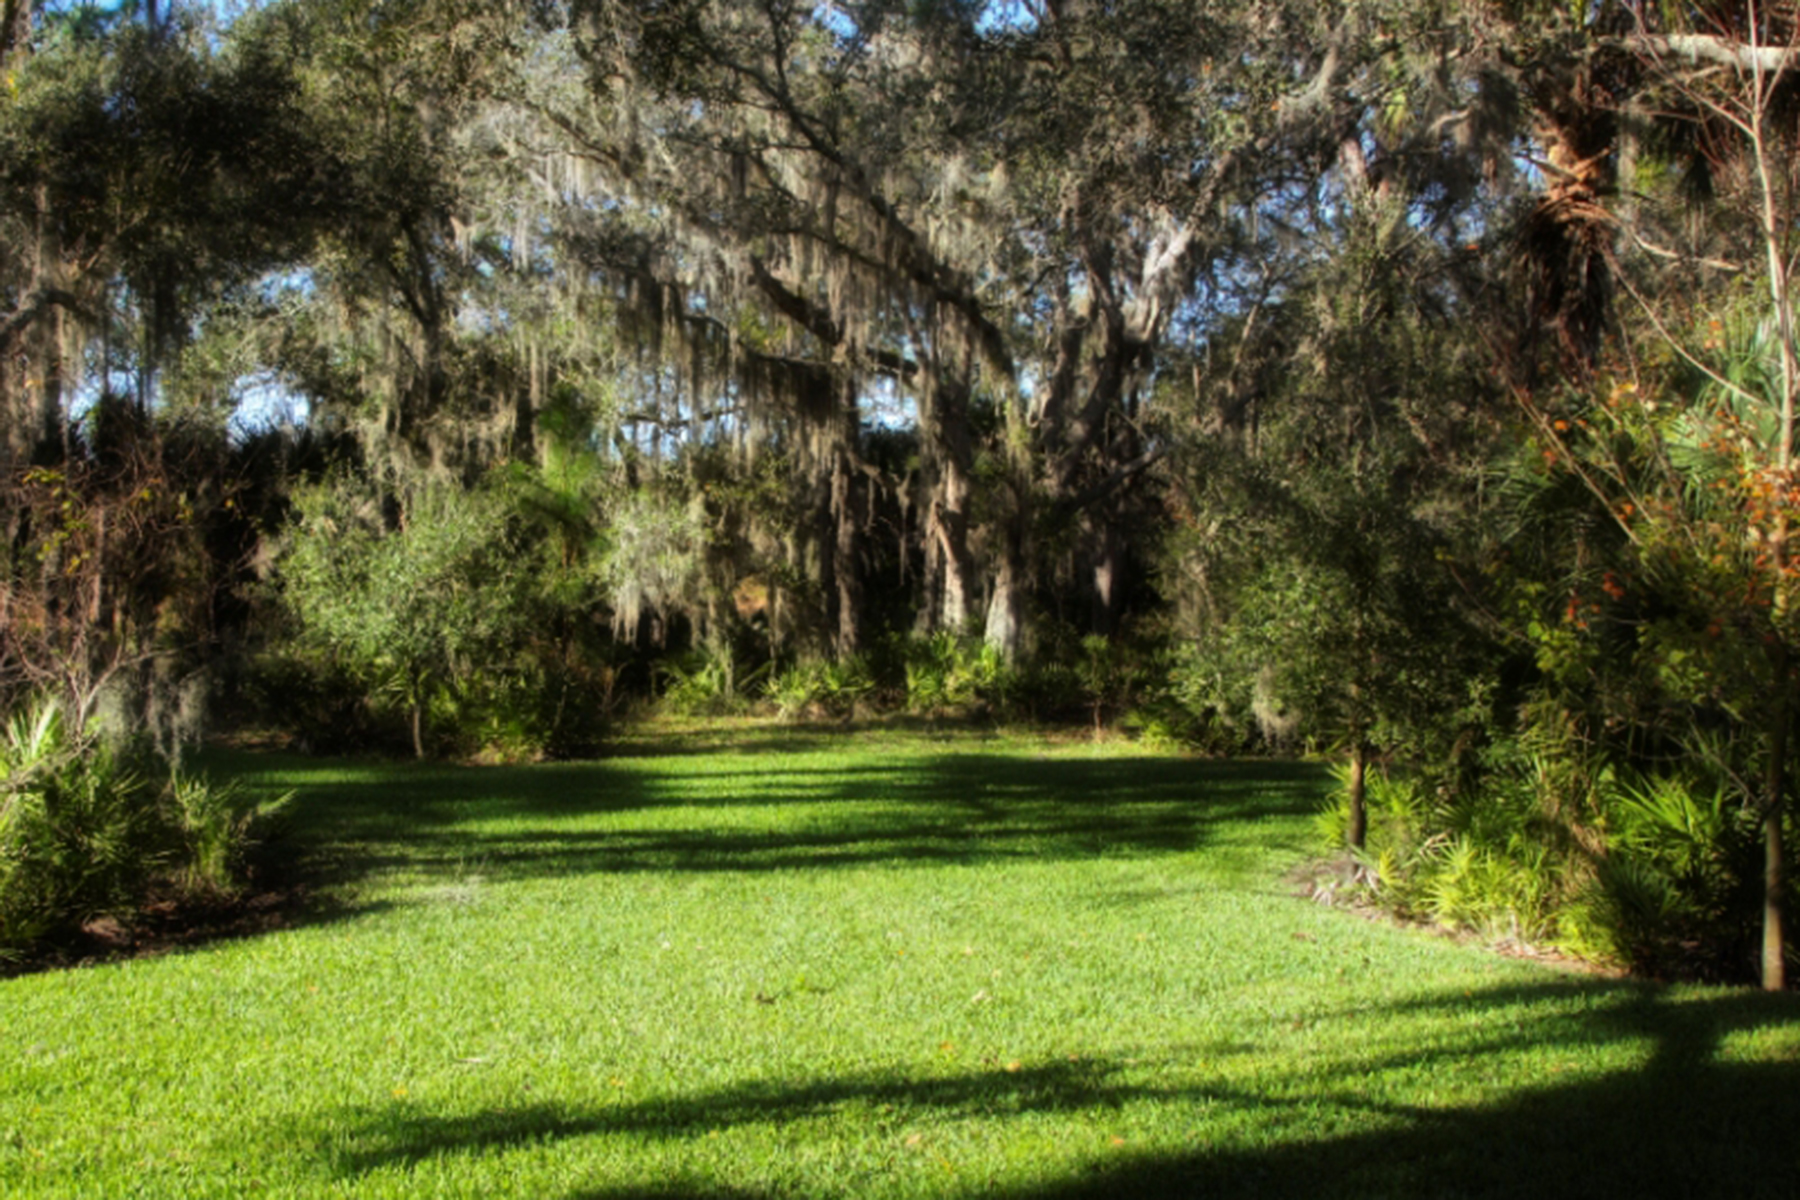 Land for Sale at THE FOREST AT HI HAT RANCH 9255 Swaying Branch Rd 14, Sarasota, Florida 34241 United States